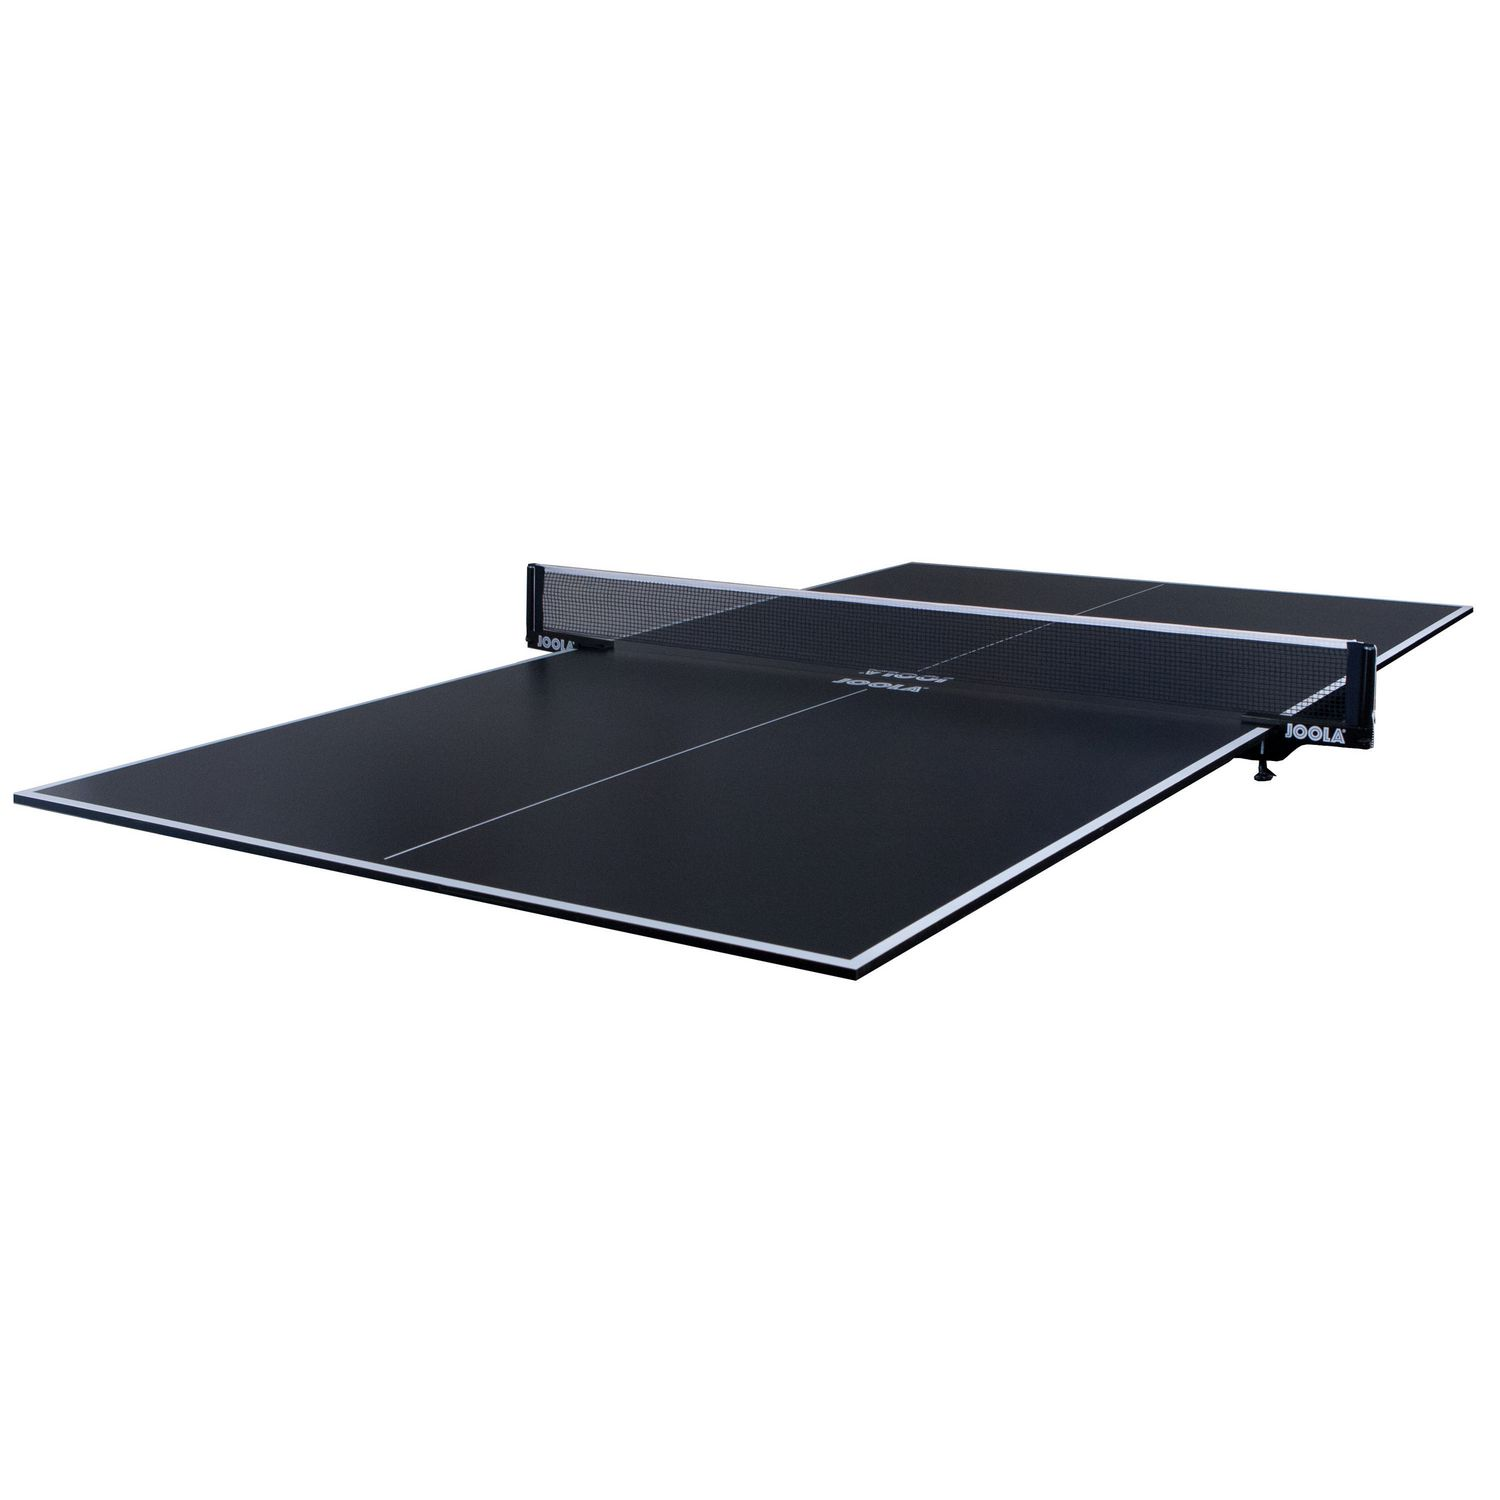 Ping Pong Table Conversion Top 100 Images Foot Pool